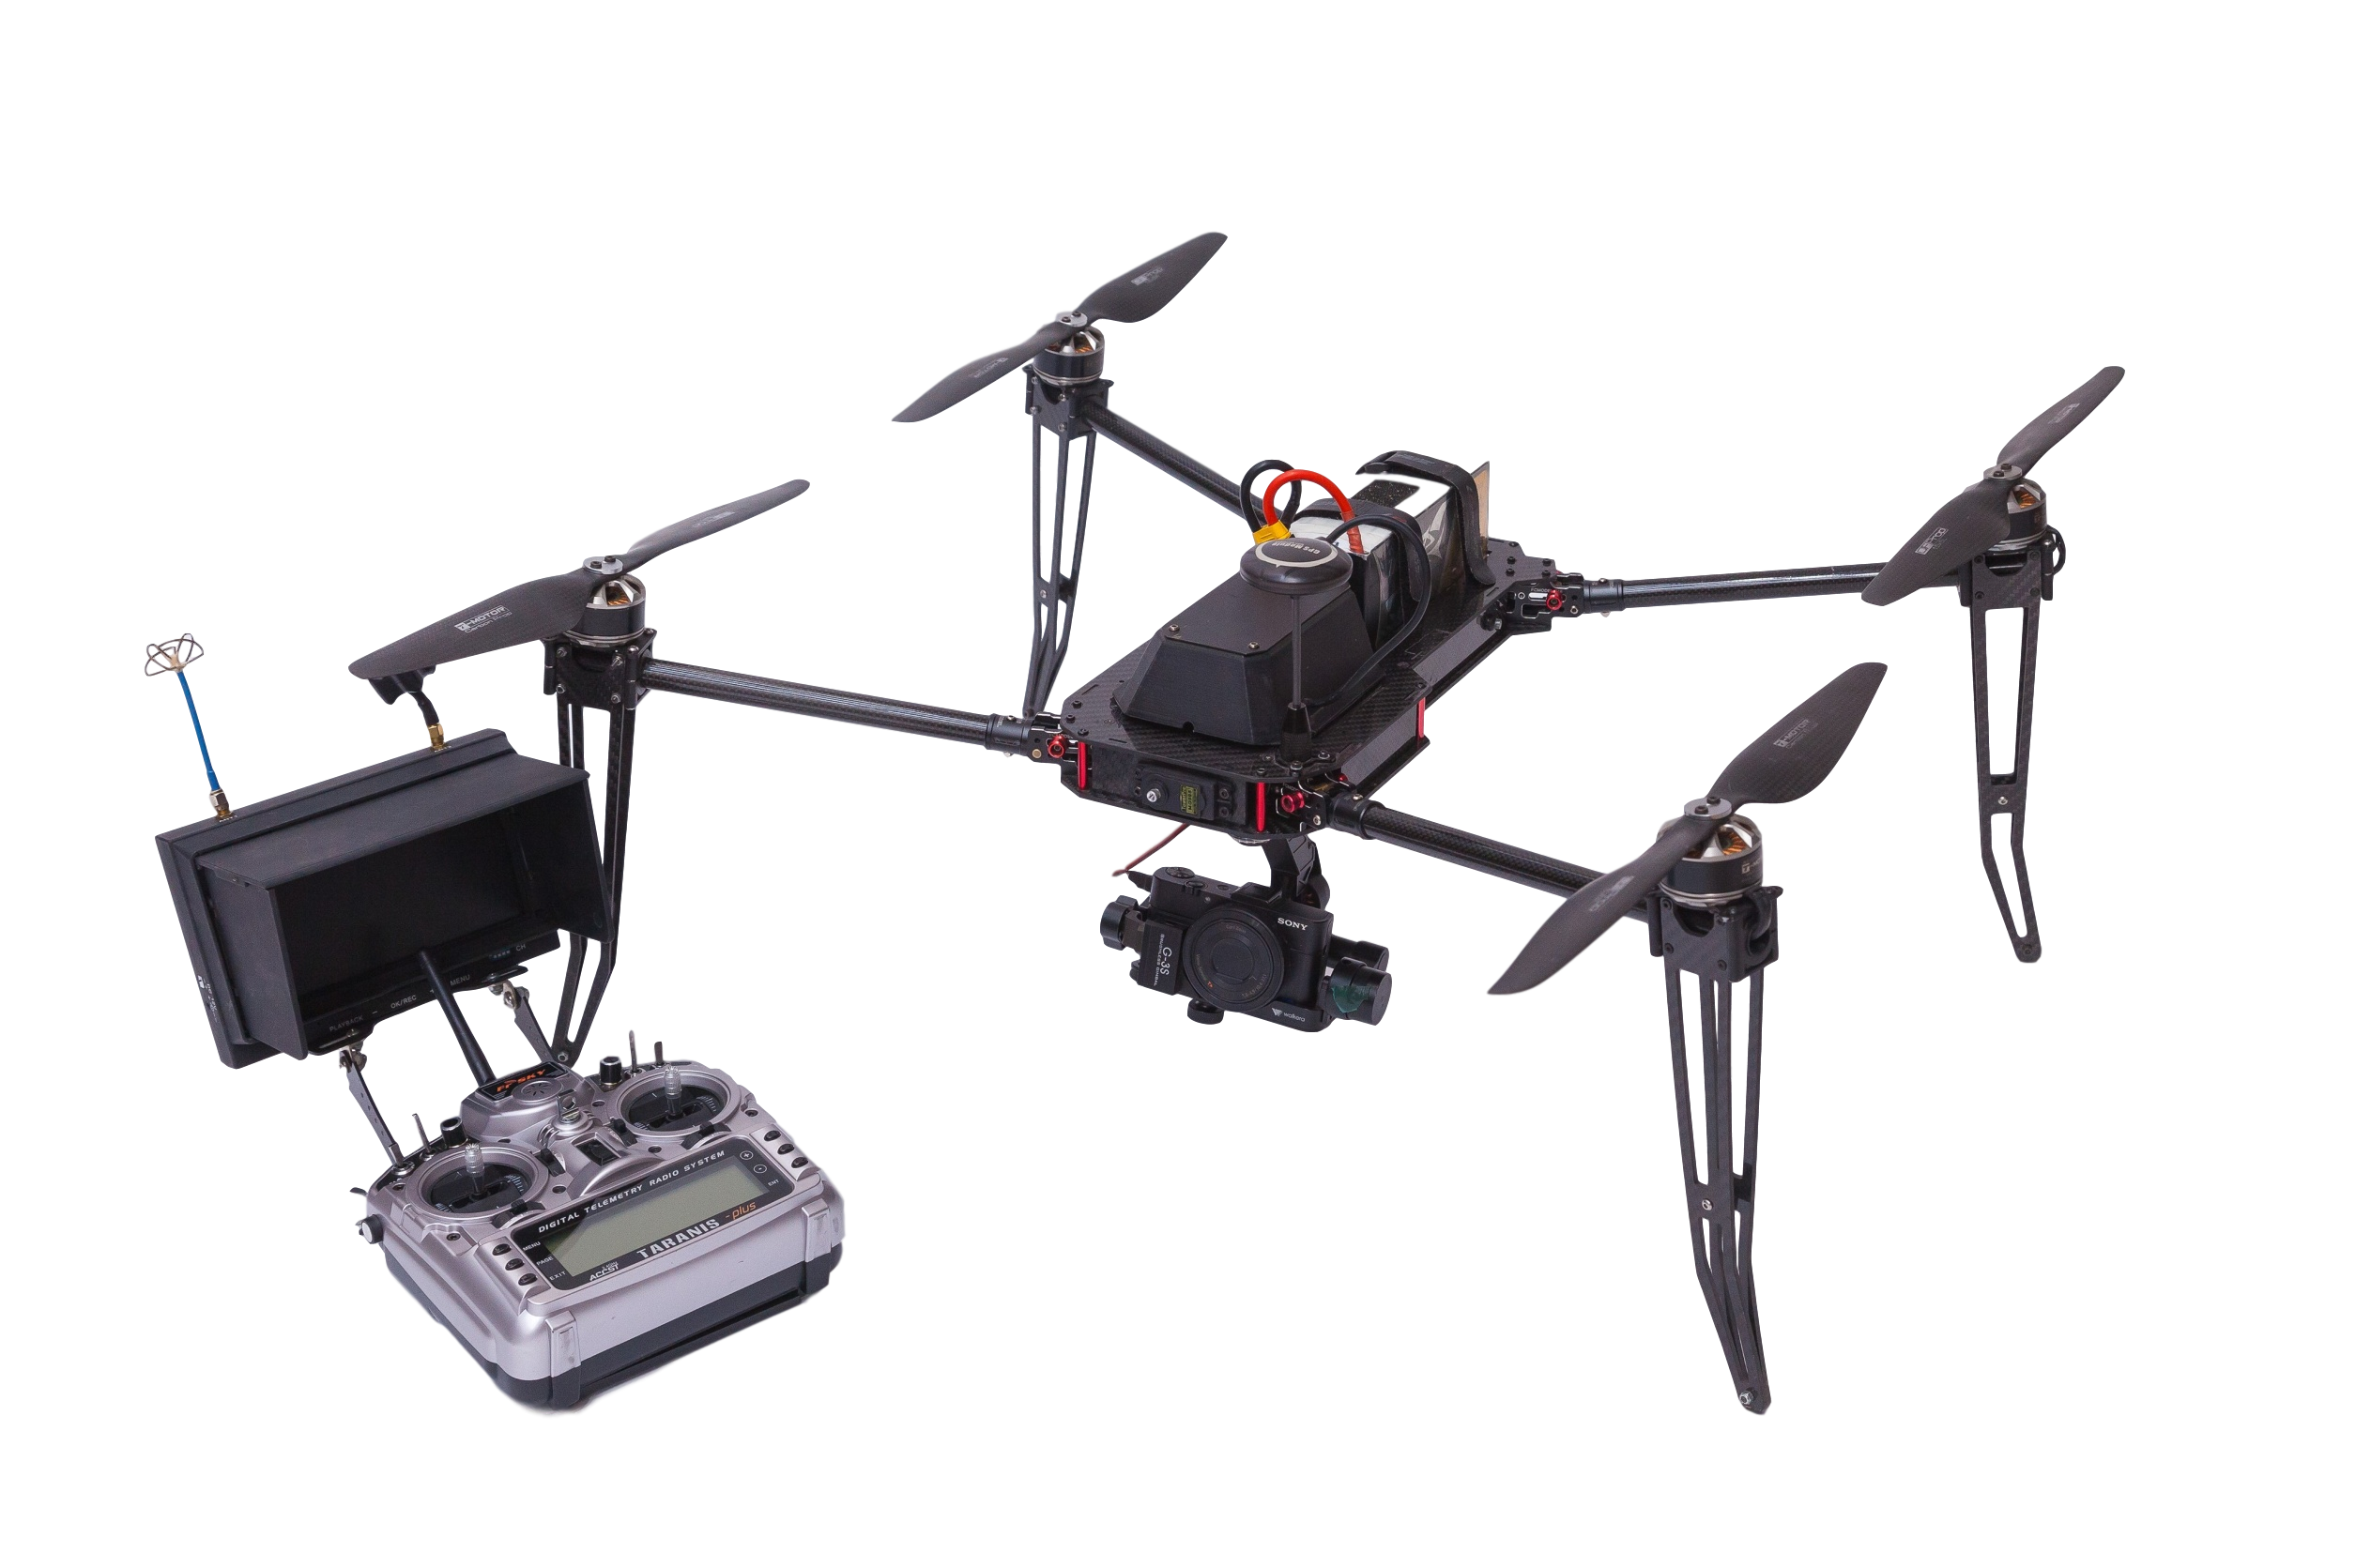 https://www.dronezone.ro/wp-content/uploads/2018/09/29680585_10215496107417118_1522528037_o_clipped_rev_1.png